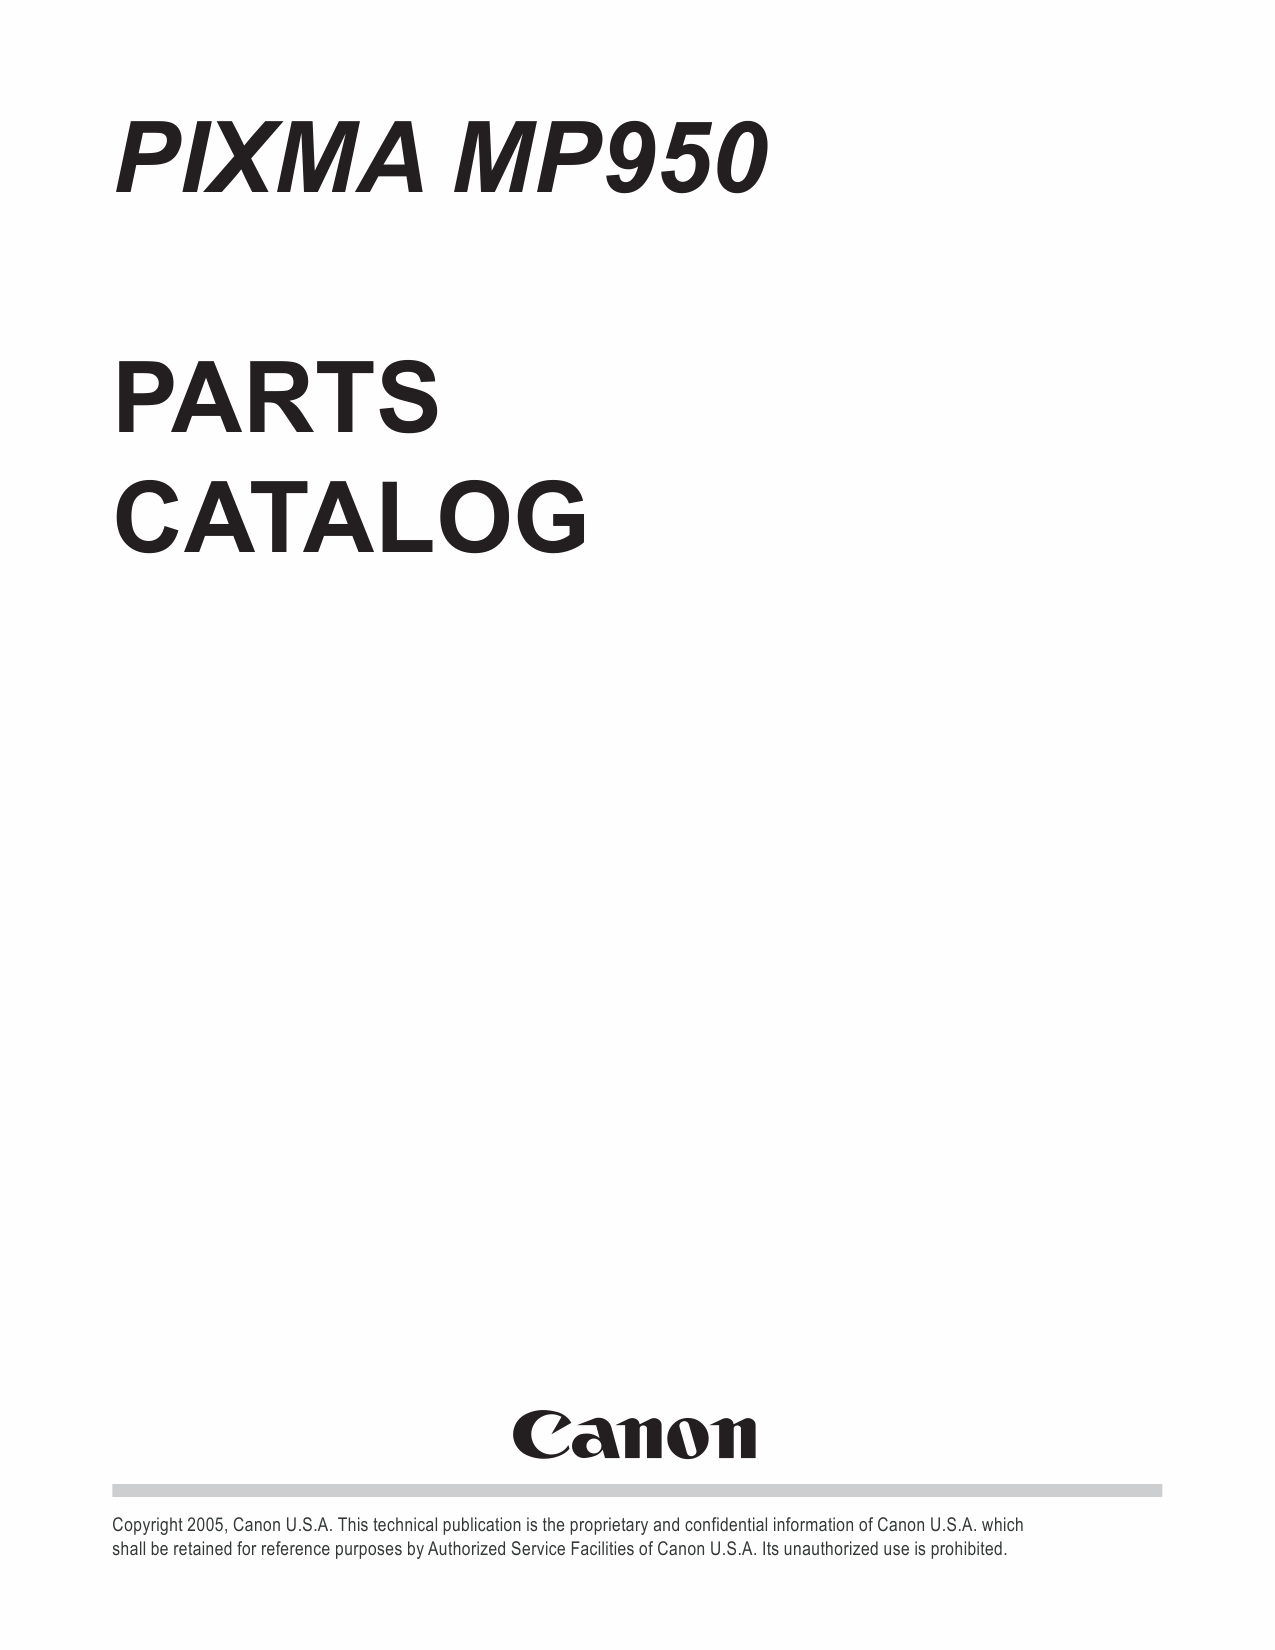 Canon PIXMA MP950 Parts Catalog